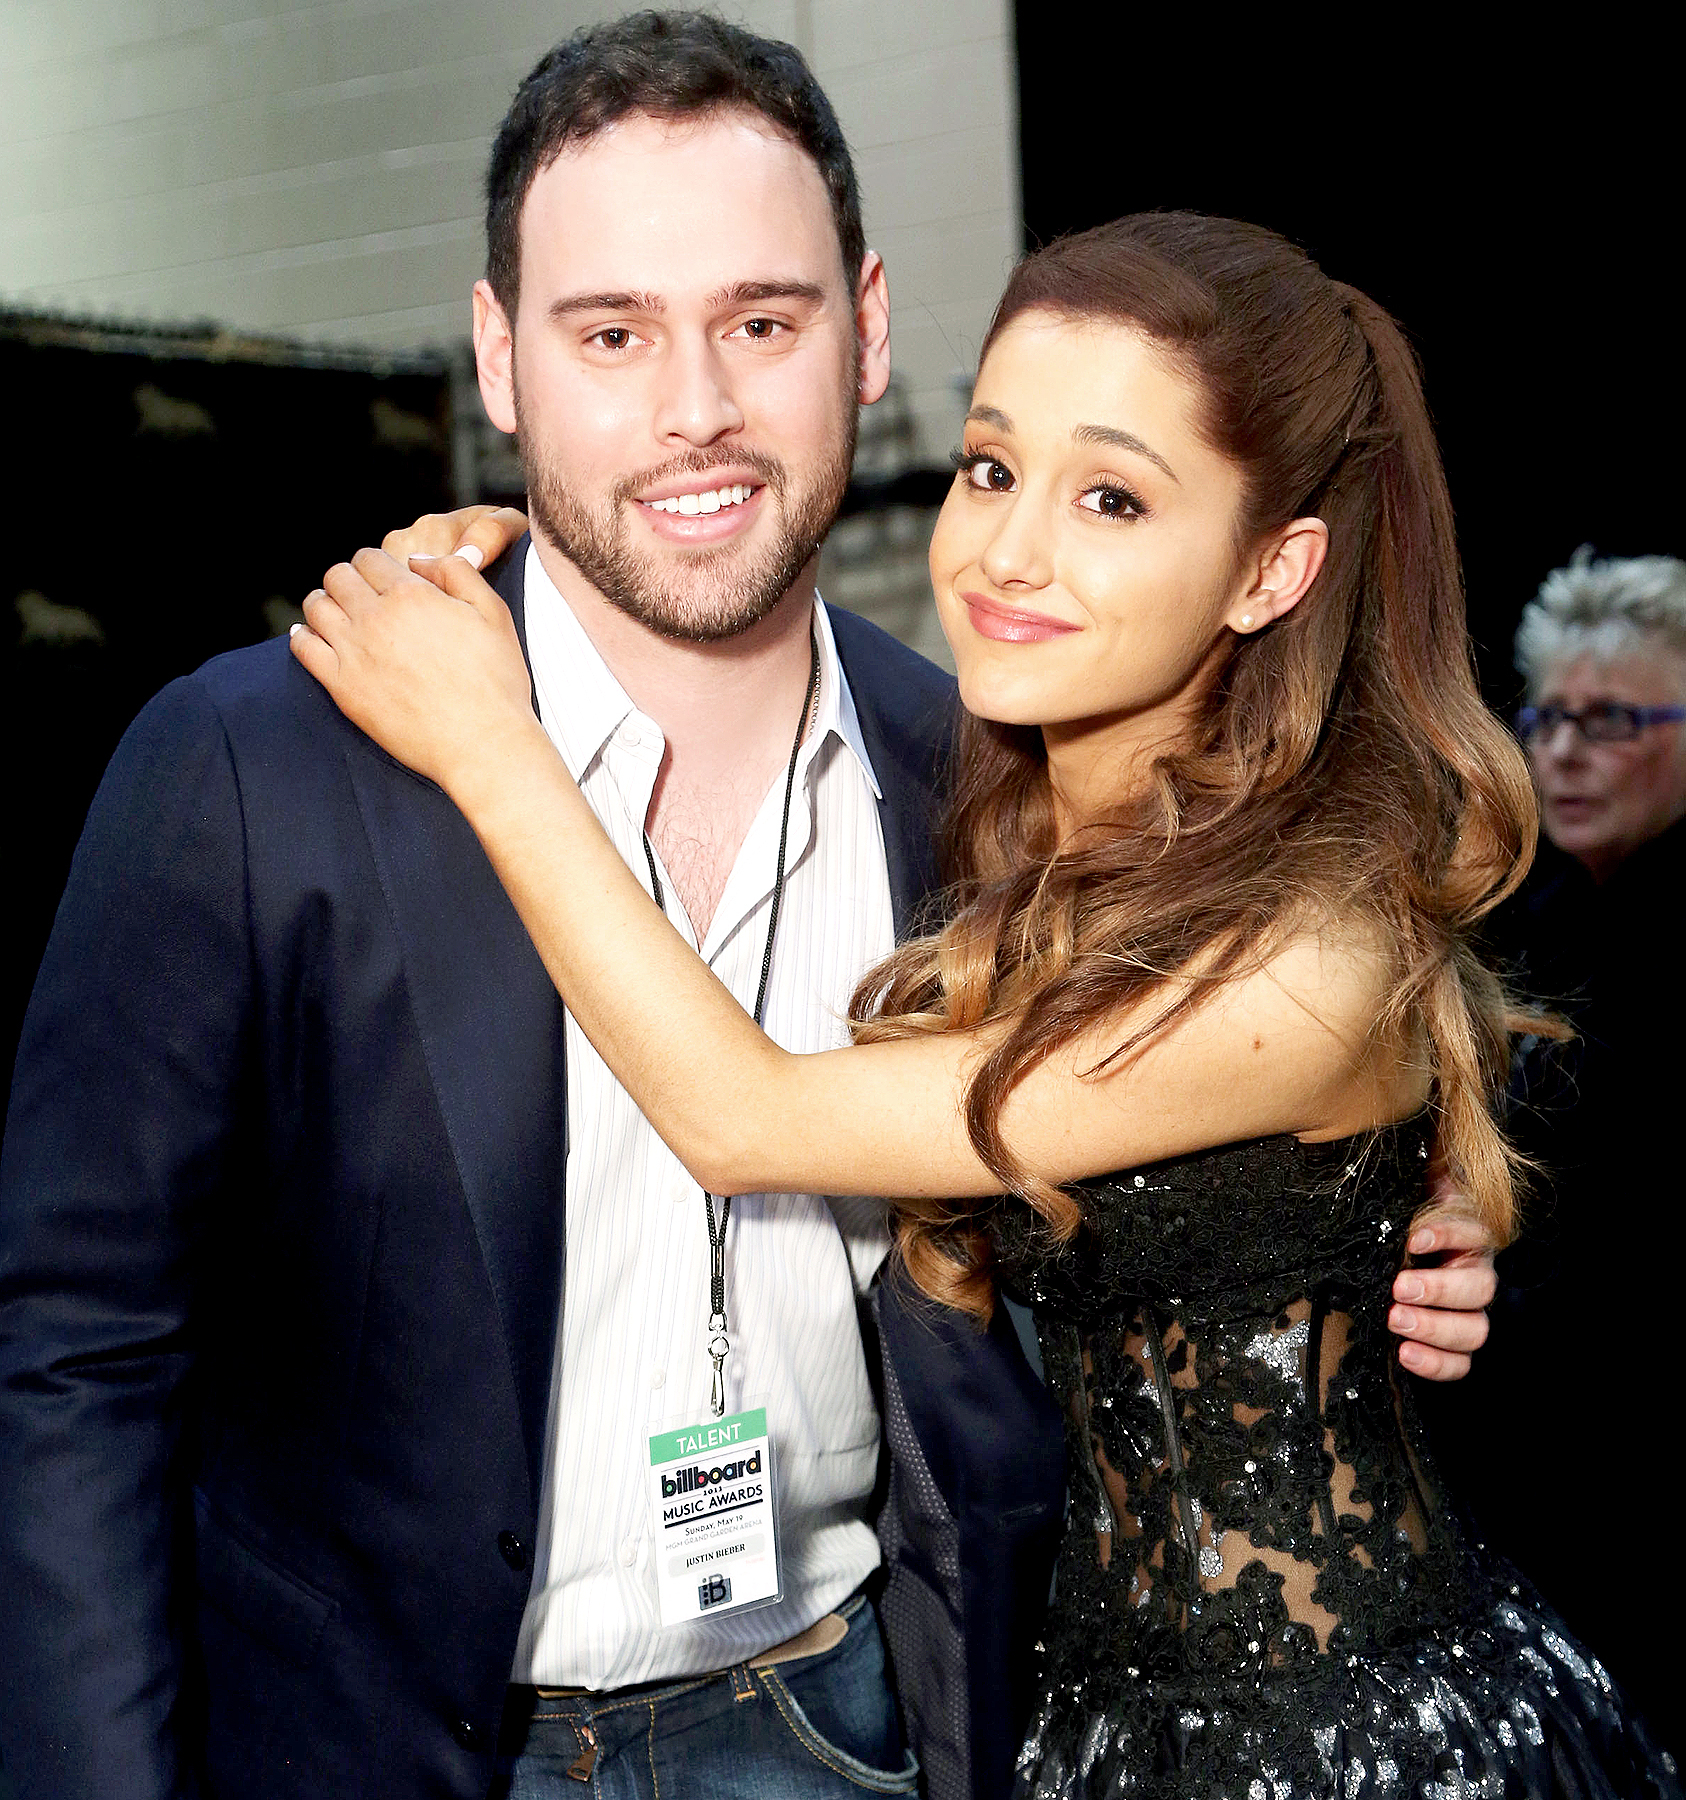 Scooter Braun and Ariana Grande attend the 2013 Billboard Music Awards in Las Vegas, Nevada on May 19, 2013.